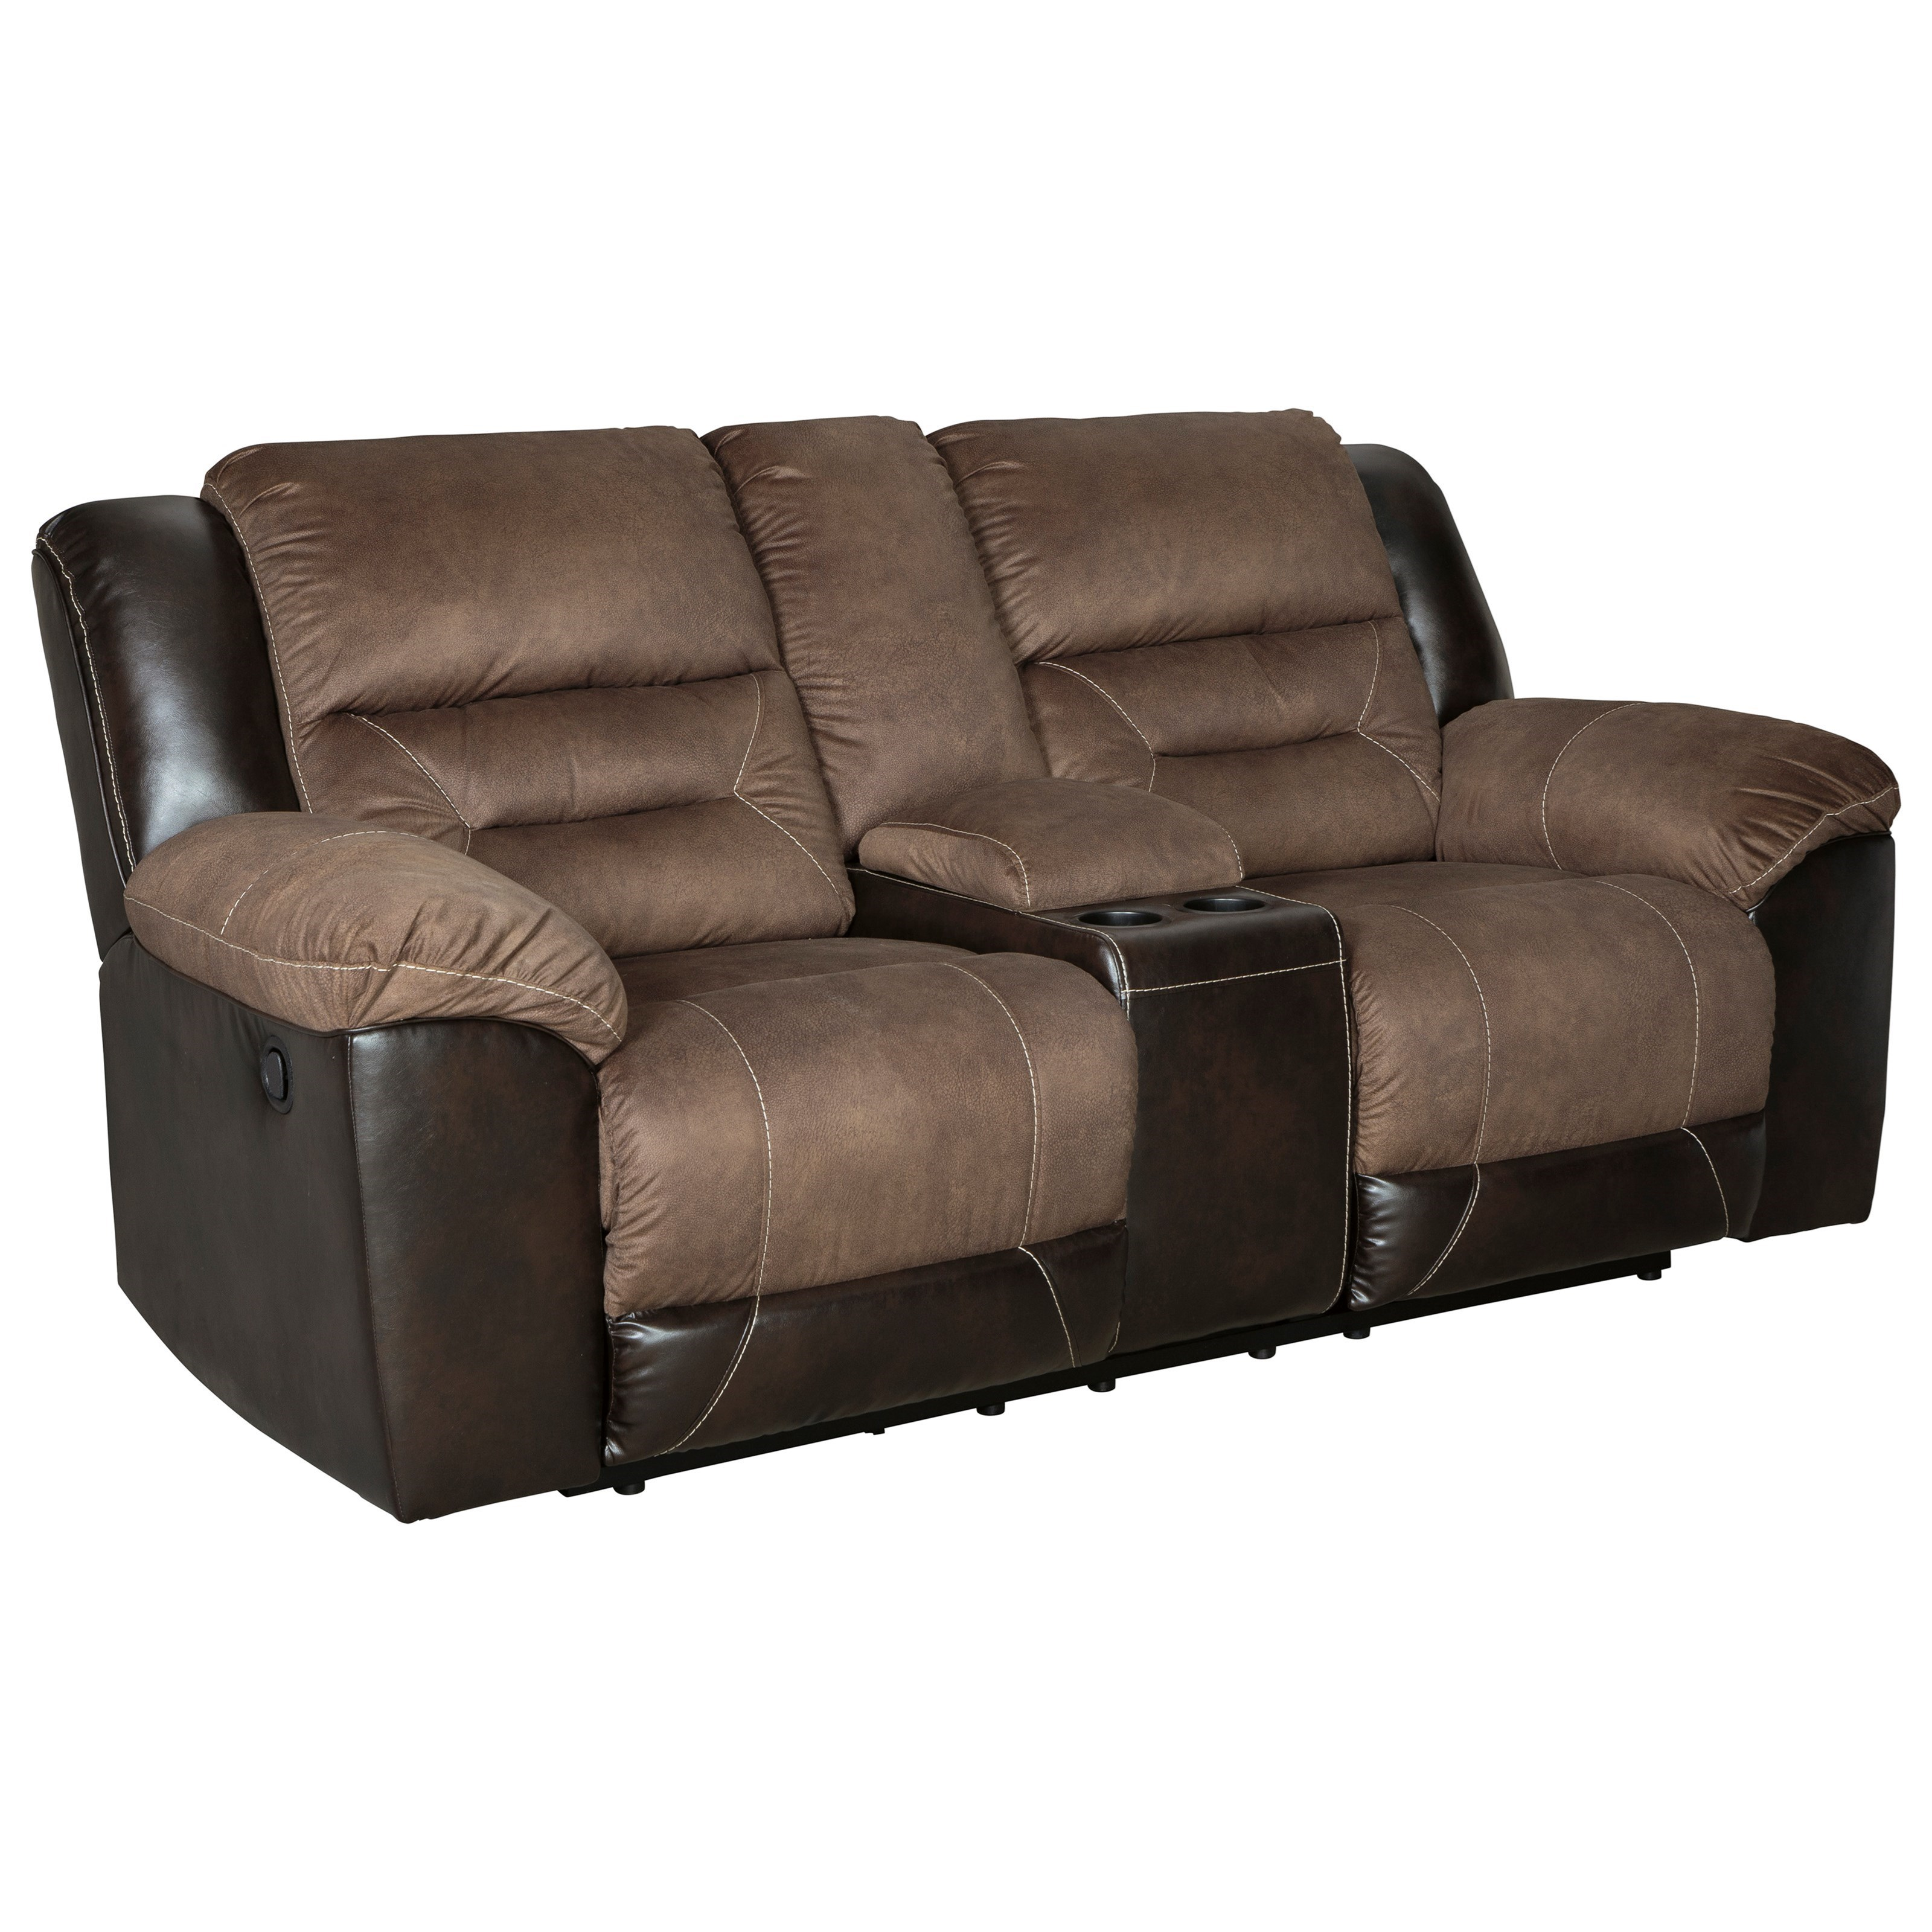 Ashley Furniture Outlet Wausau: Signature Design By Ashley Earhart 2910194 Casual